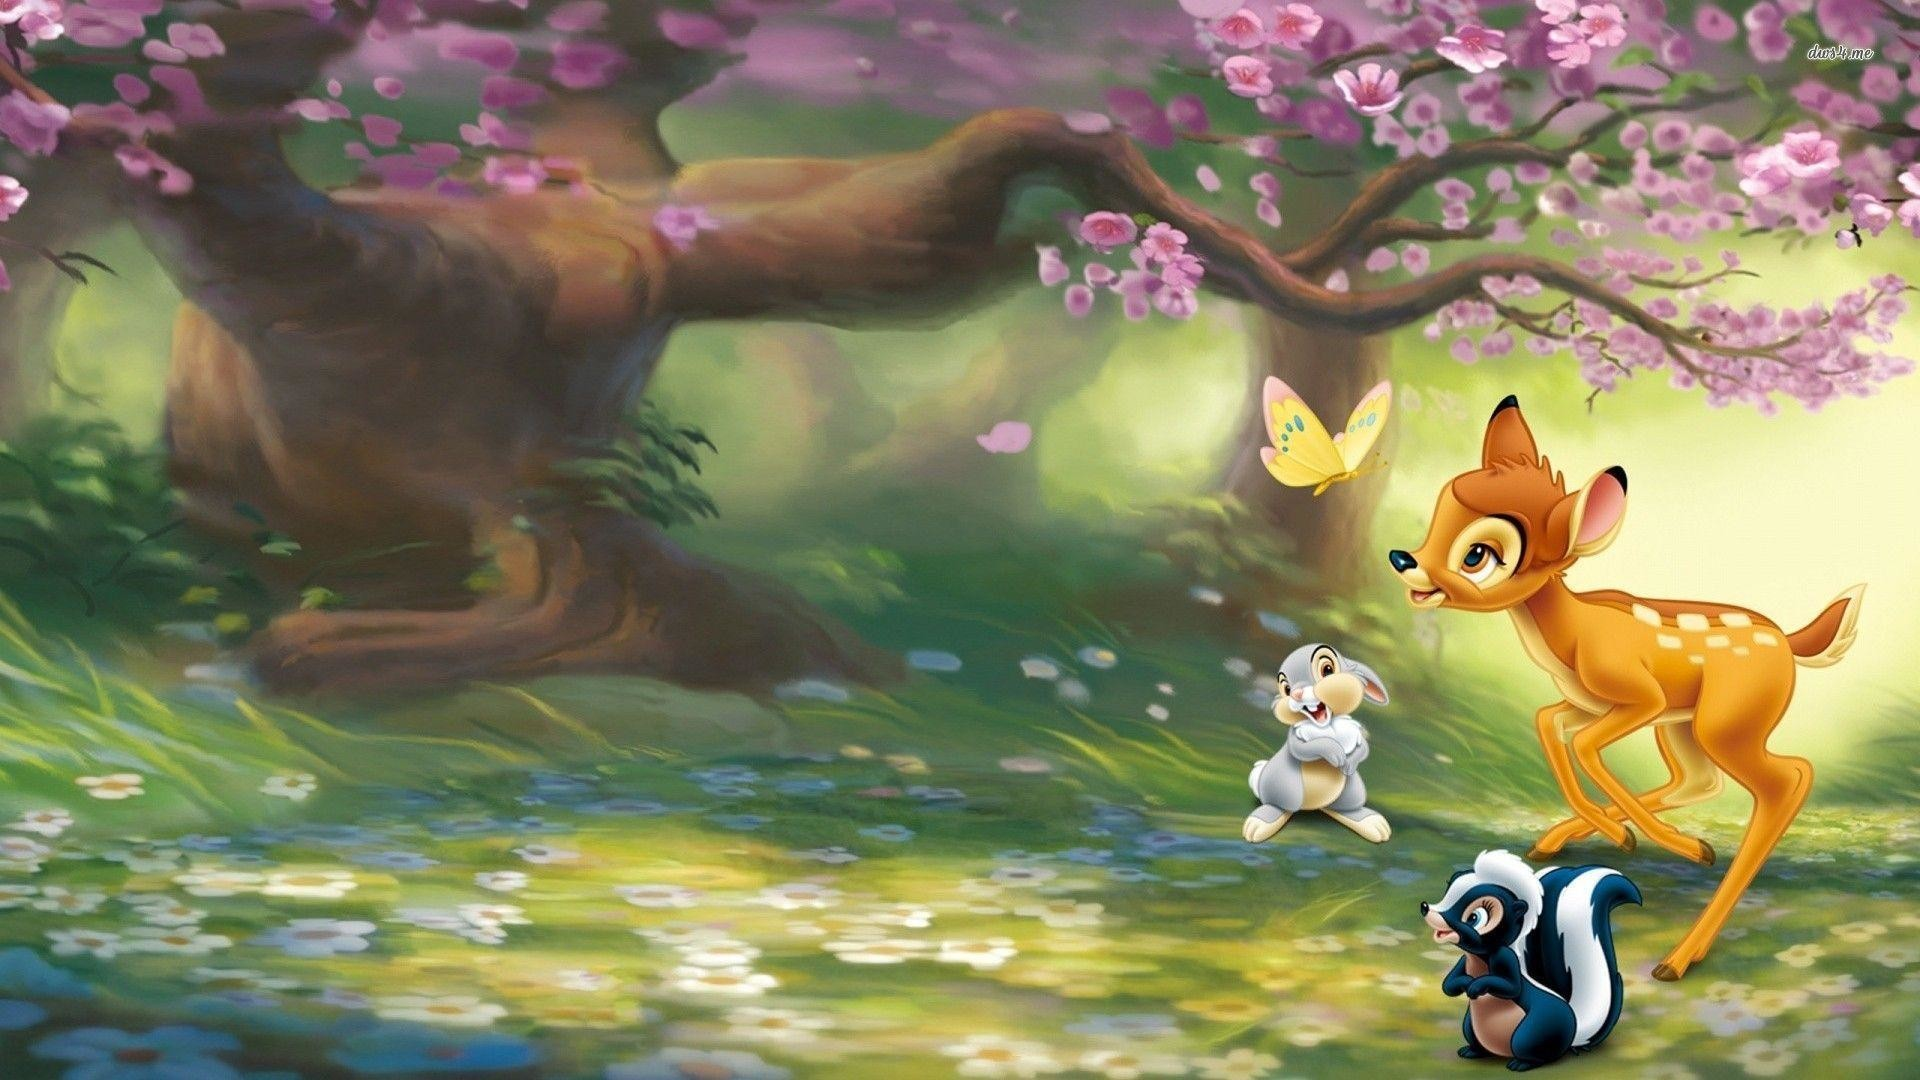 Res: 1920x1080, Bambi | Wallpapers HD free Download